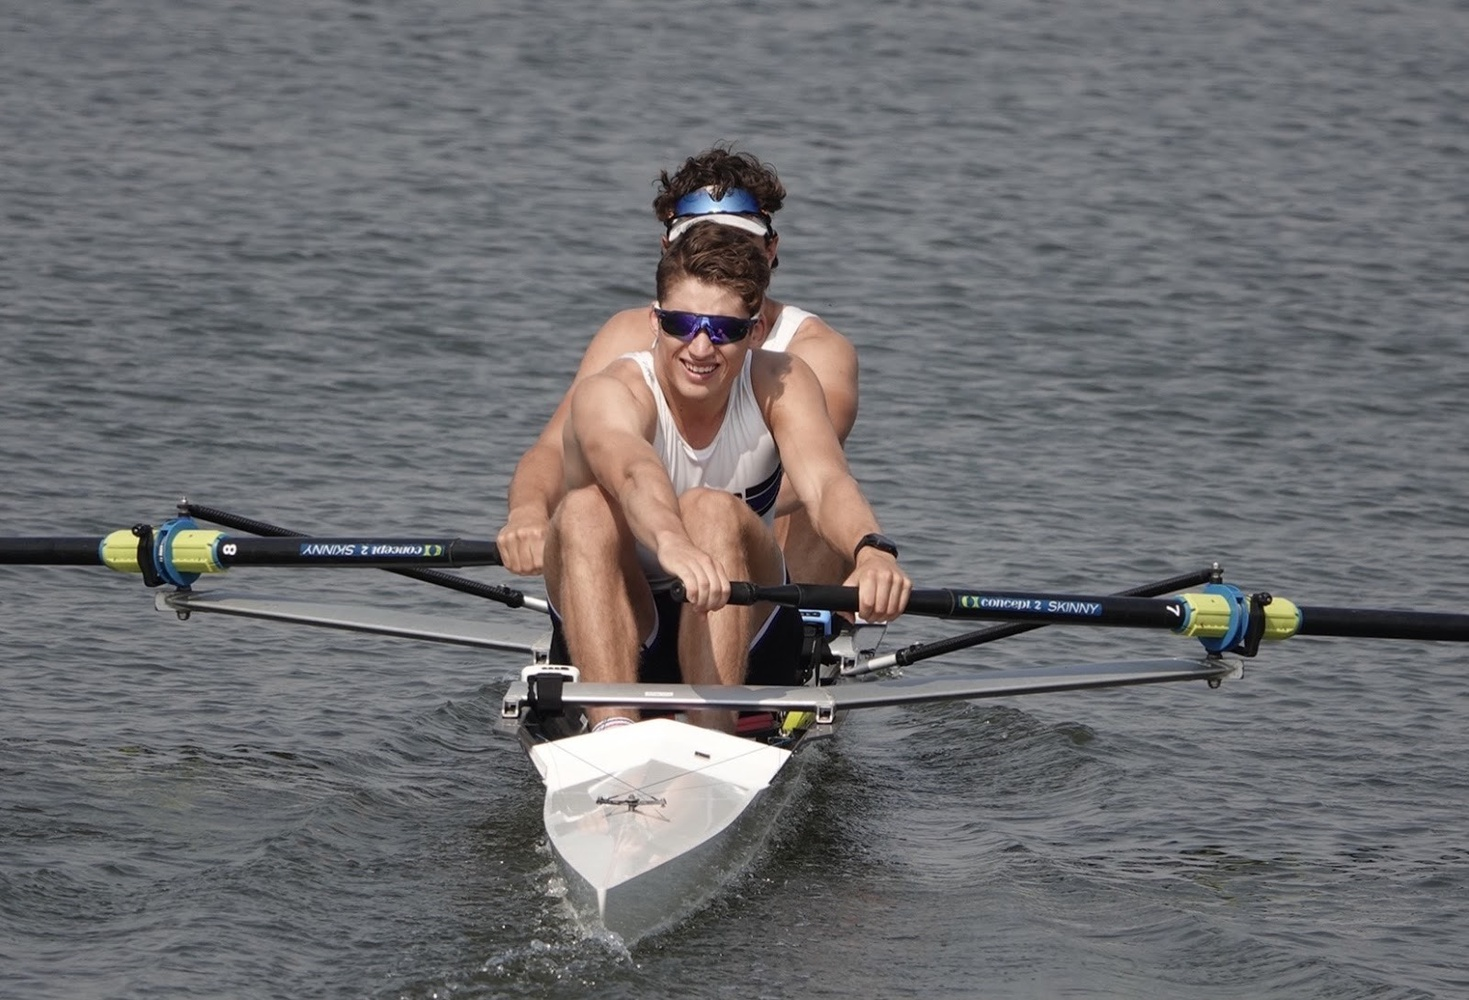 First-year rower Martin Kulesza is keeping up with his training regimen from Australia while attending Harvard classes at odd hours due to the significant time difference.